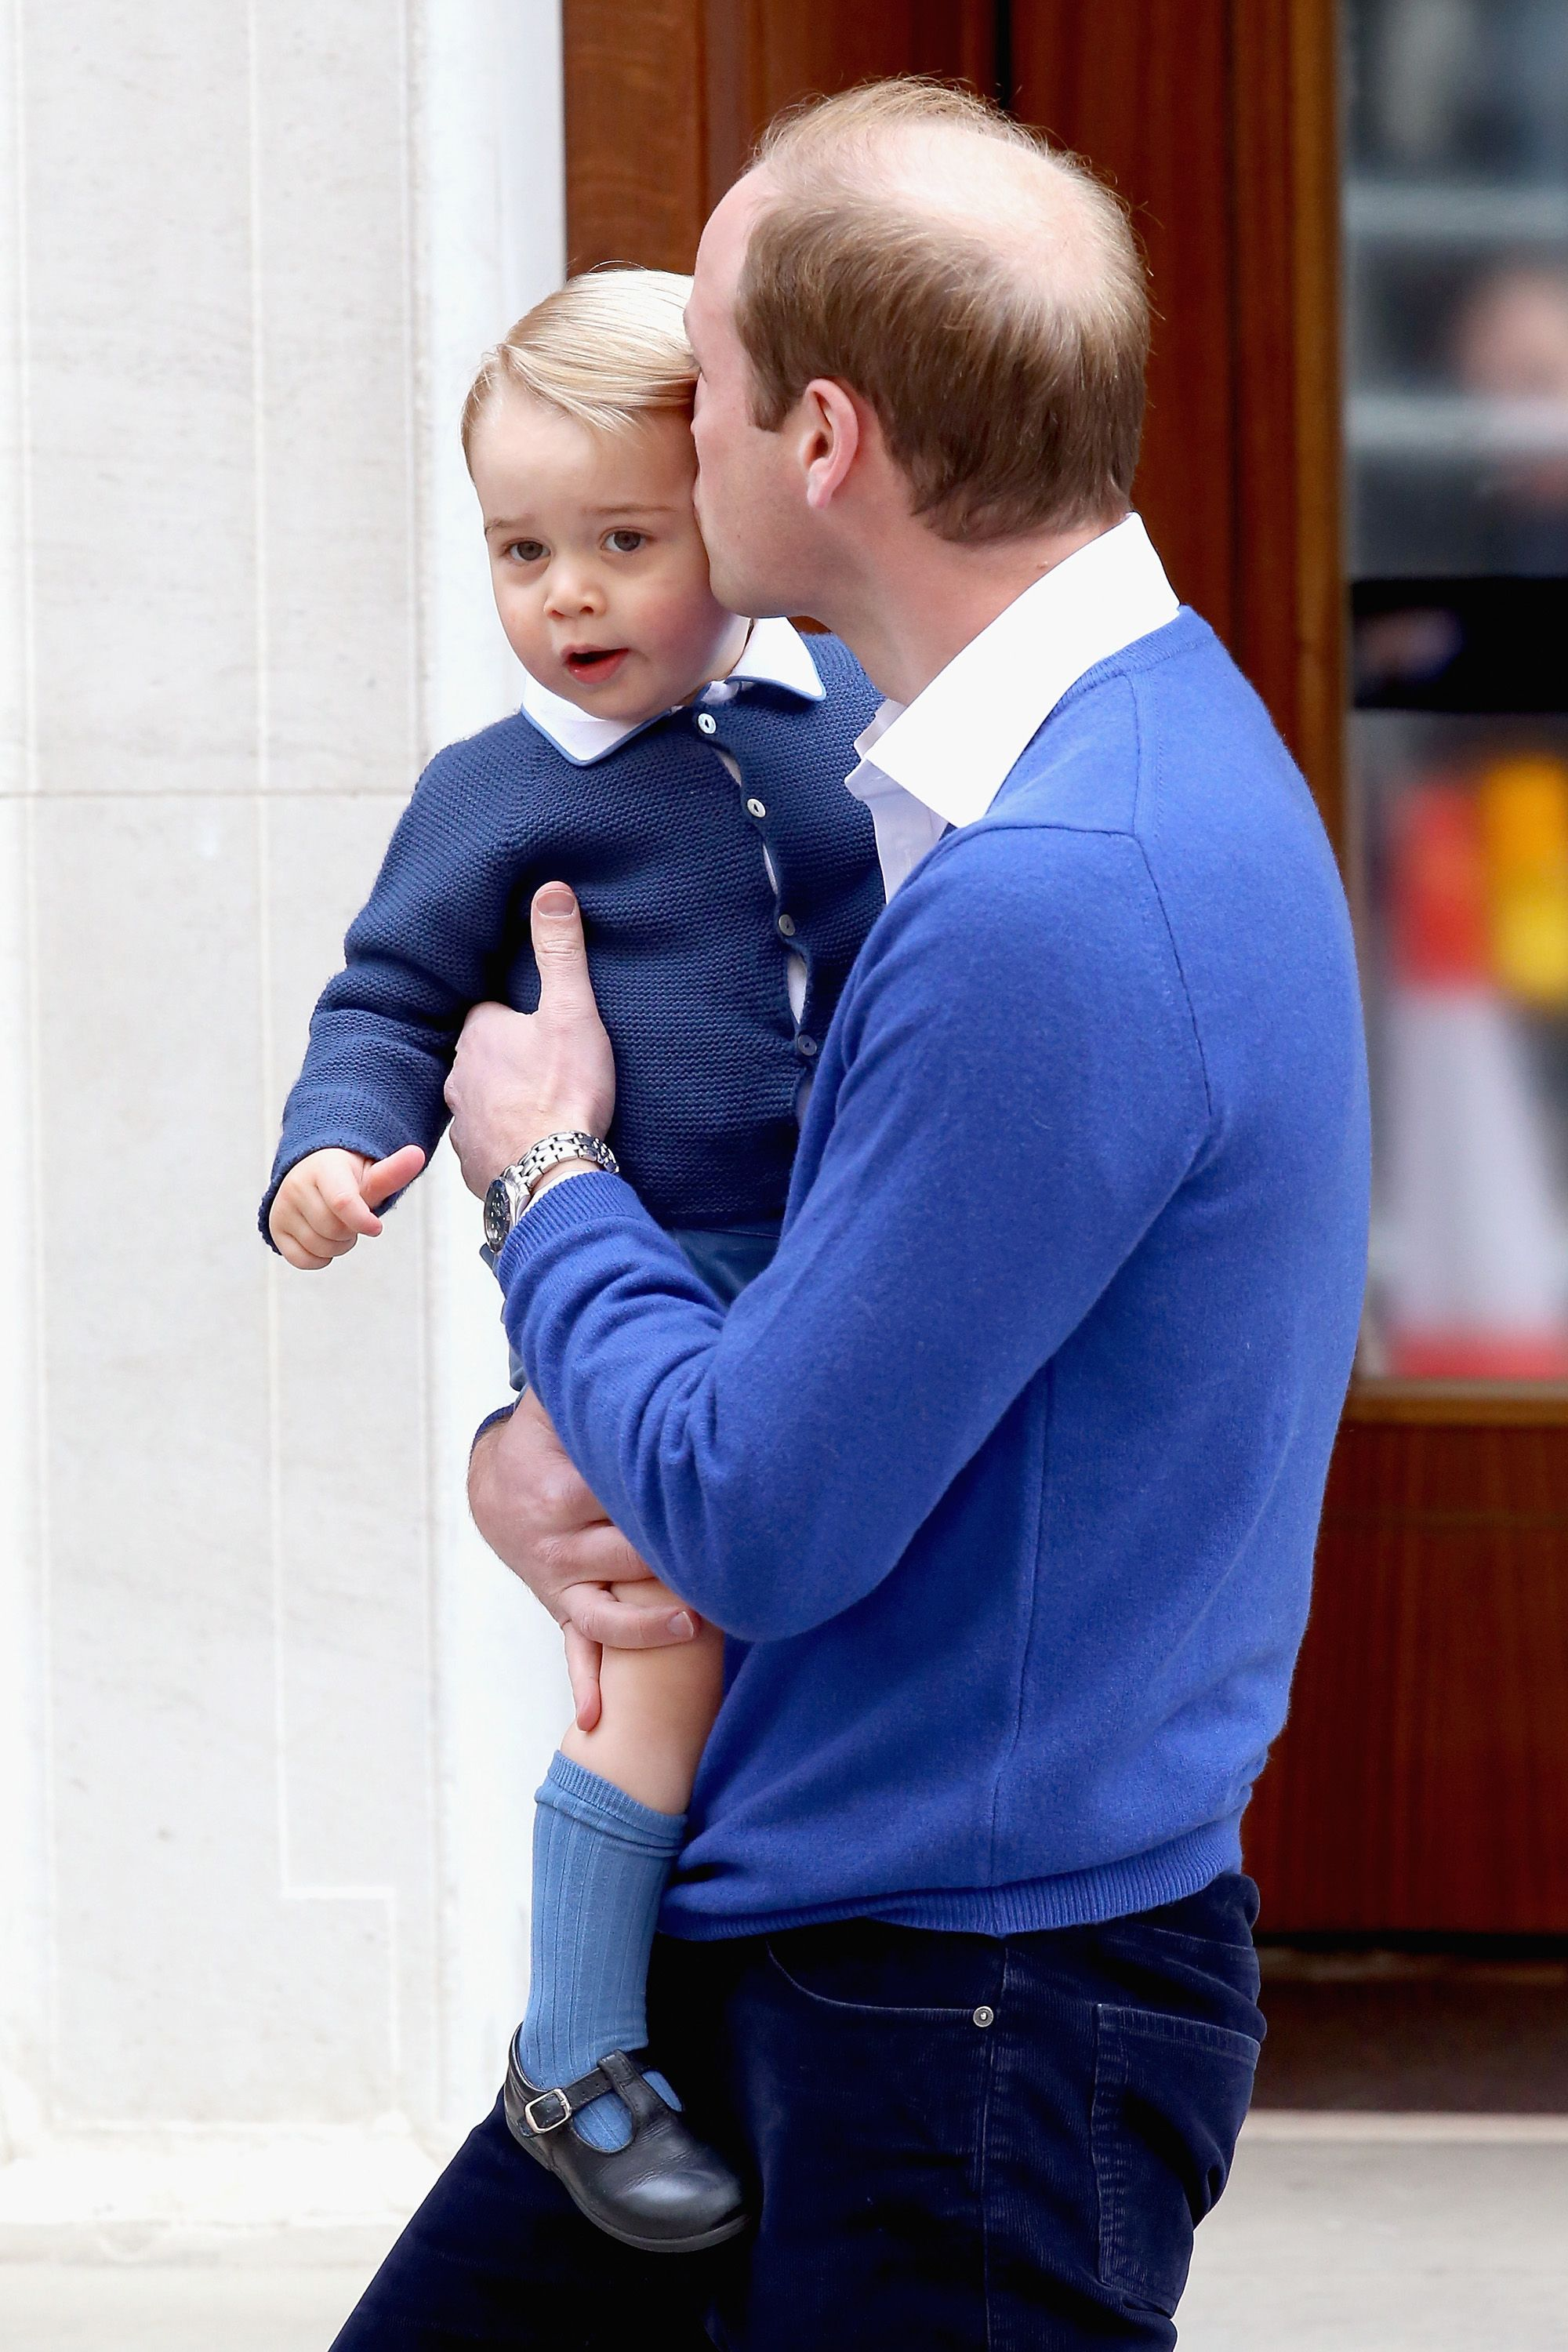 Prince William plants a kiss on his son before taking him to meet his new sister.   - HarpersBAZAAR.com